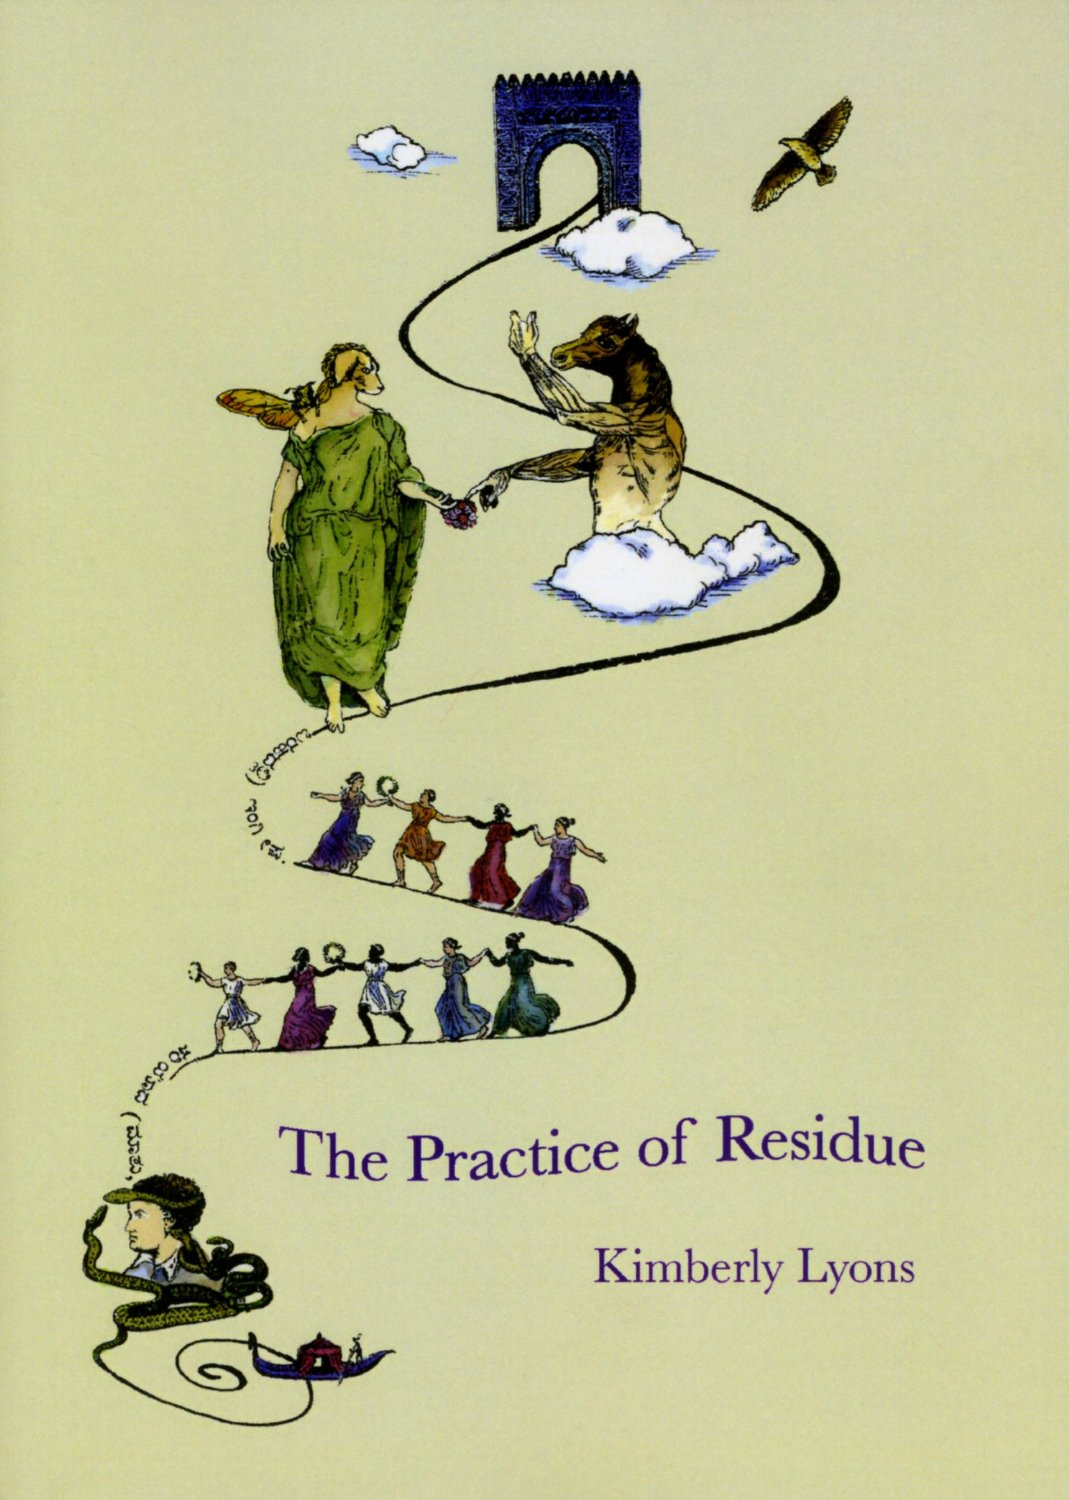 The Practice of Residue by Kimberly Lyons